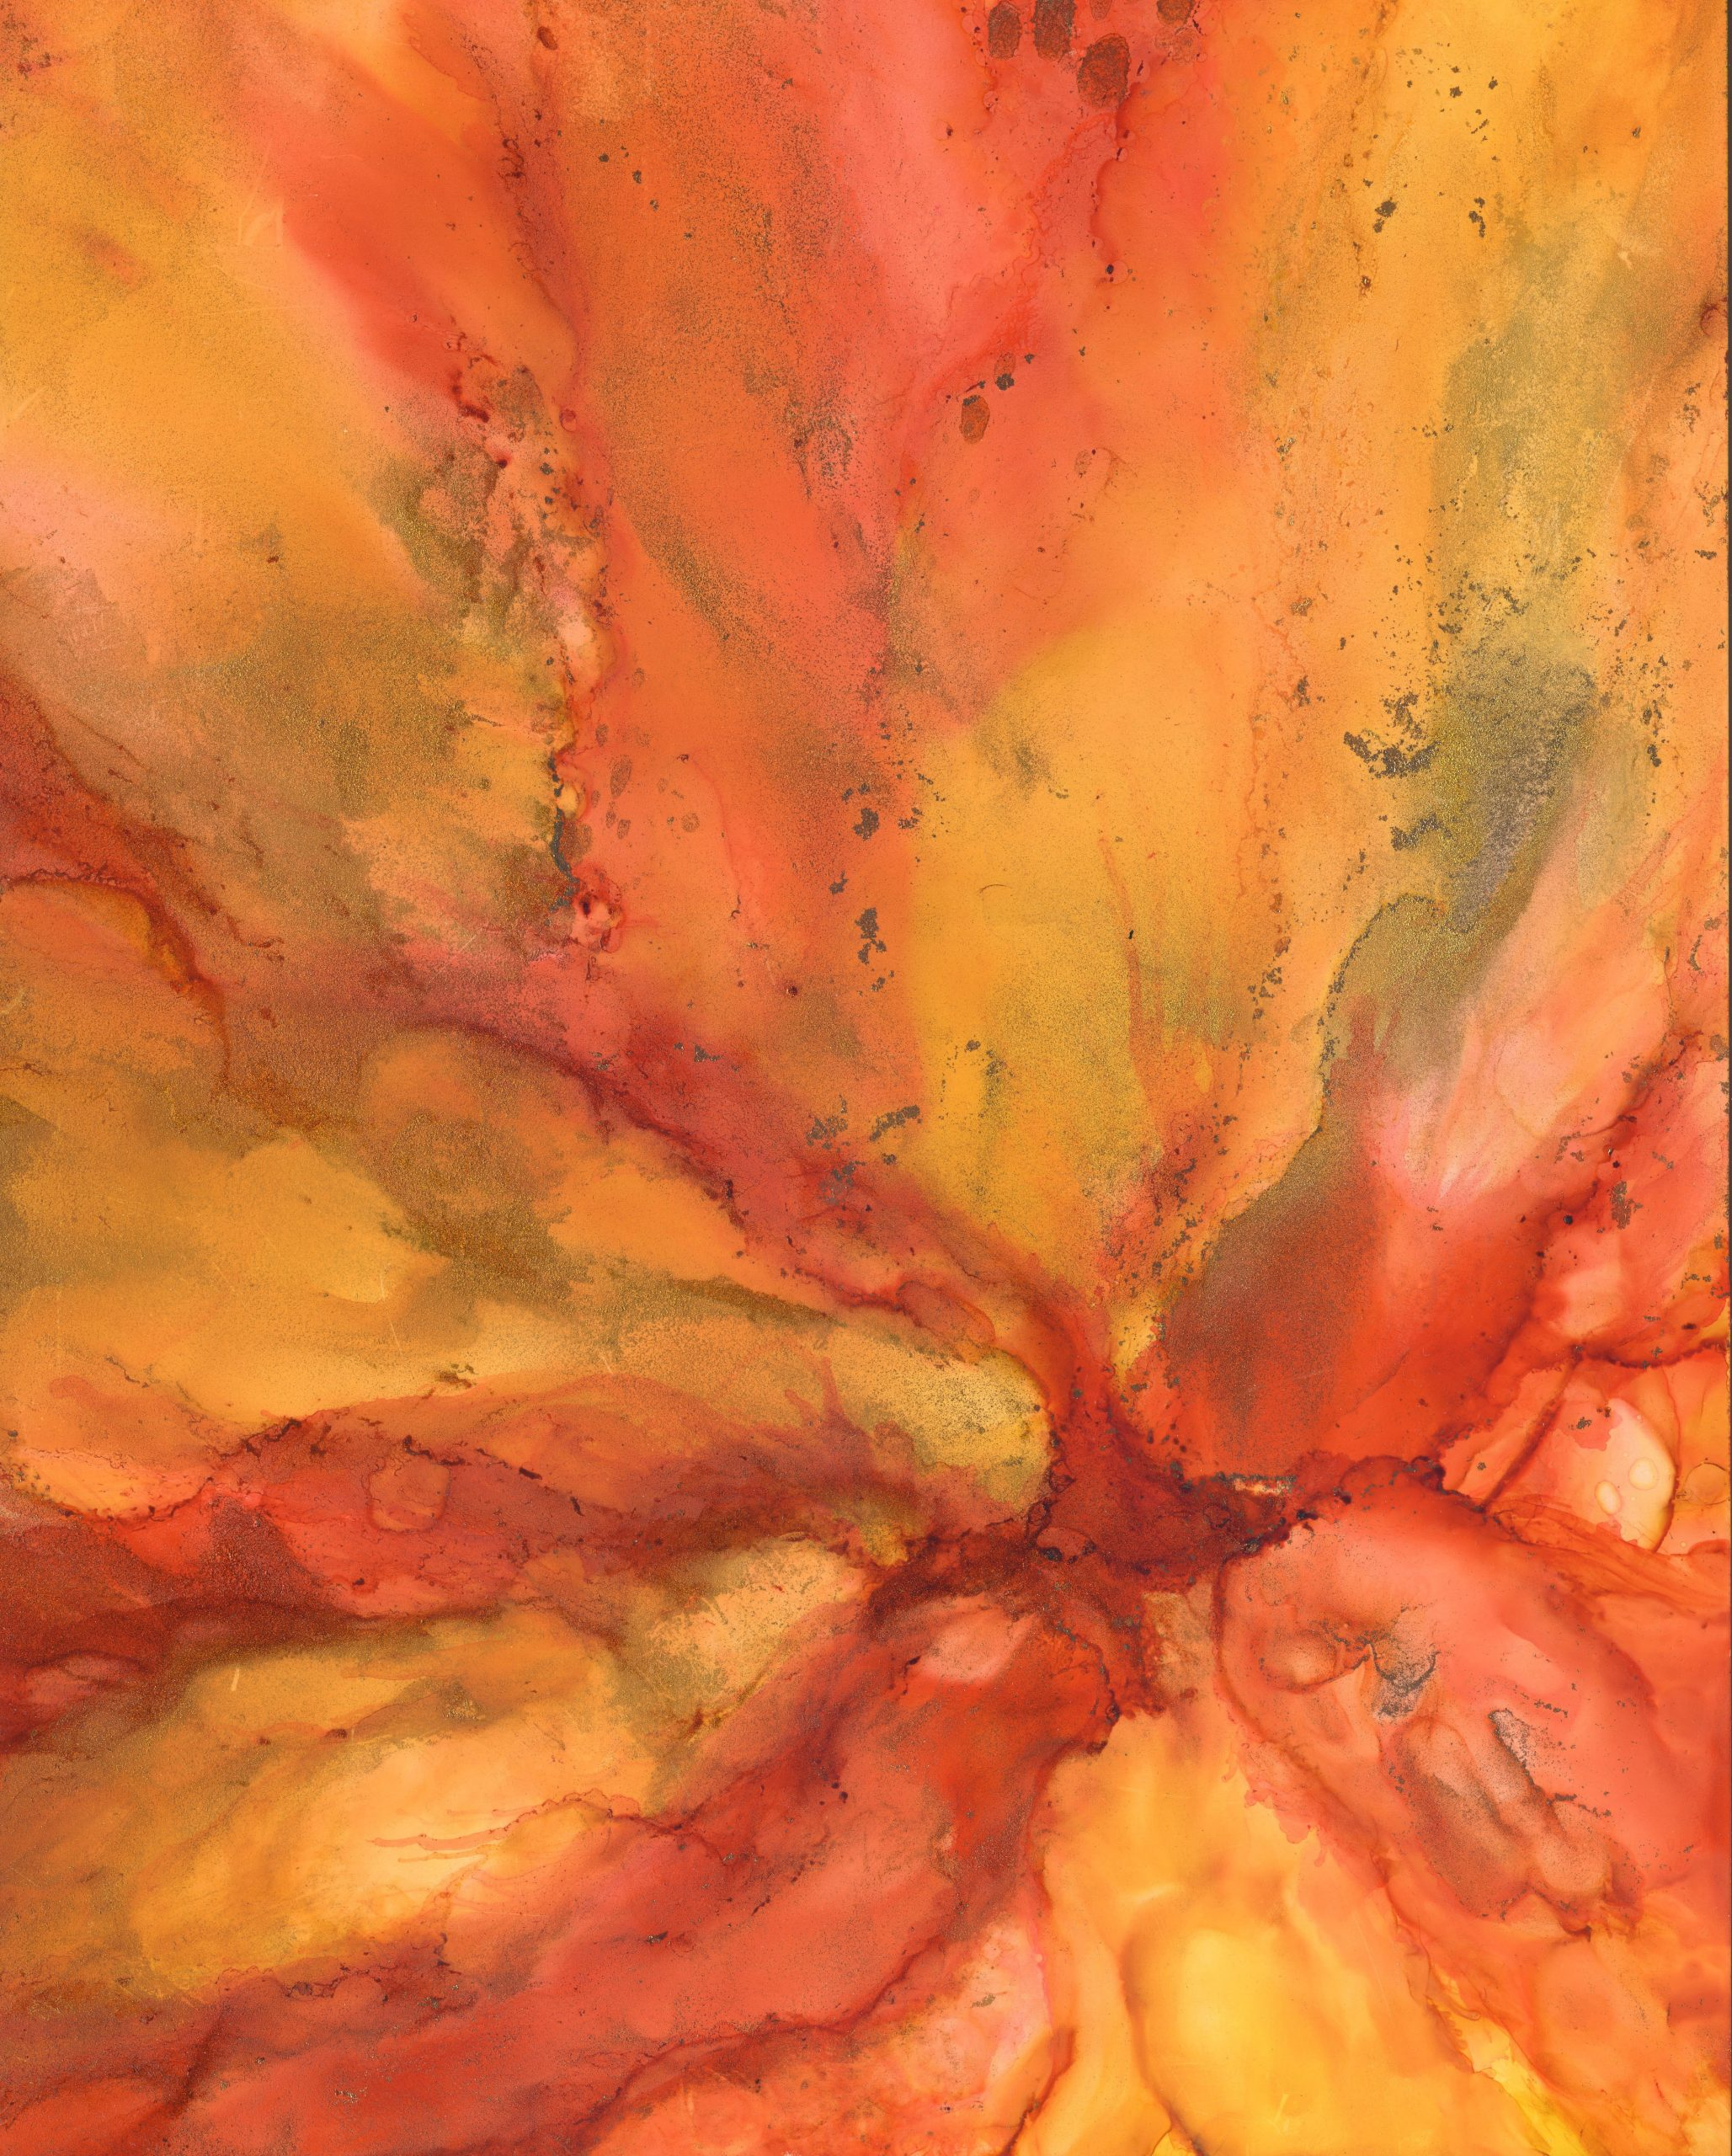 Sunburst Flower - Alcohol Ink - 11 X 14 - $150